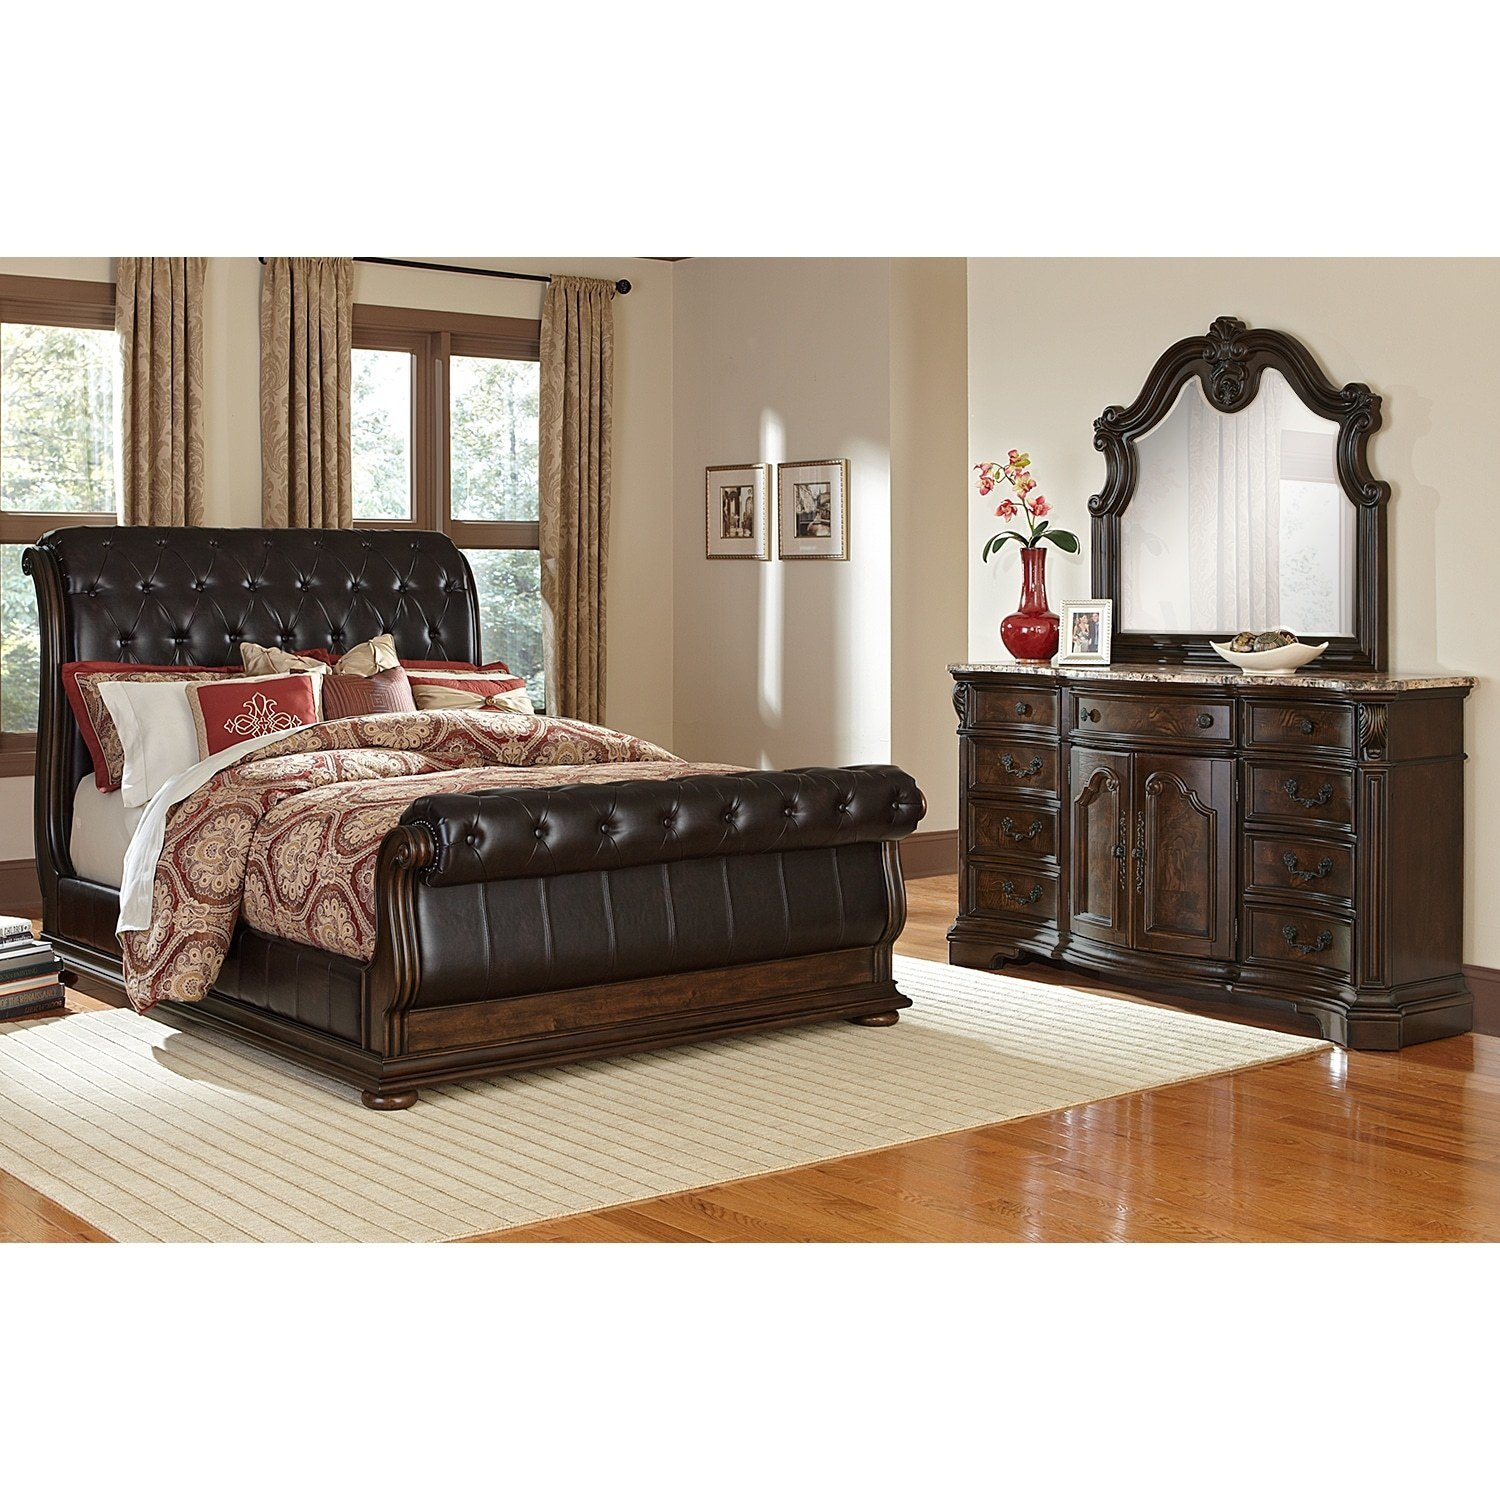 Best Monticello Pecan Ii 5 Pc King Bedroom Value City Furniture With Pictures